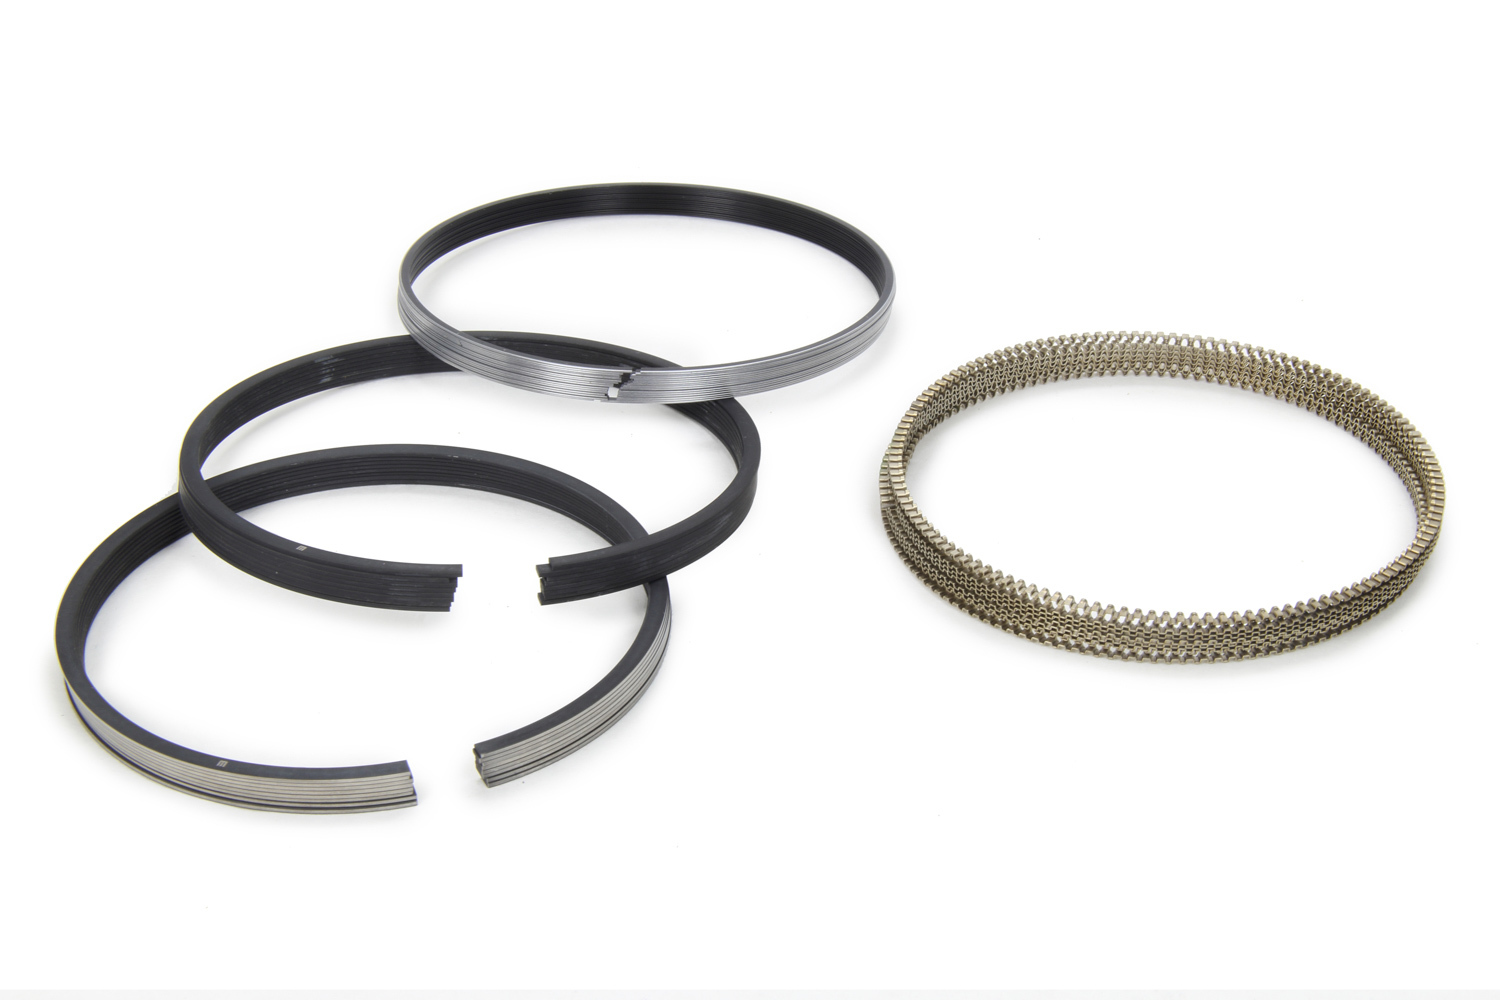 Mahle Pistons 4080MS-112 Piston Rings, 4.075 in Bore, File Fit, 1.0 x 1.0 x 2.0 mm Thick, Standard Tension, Iron, 8 Cylinder Set, Kit